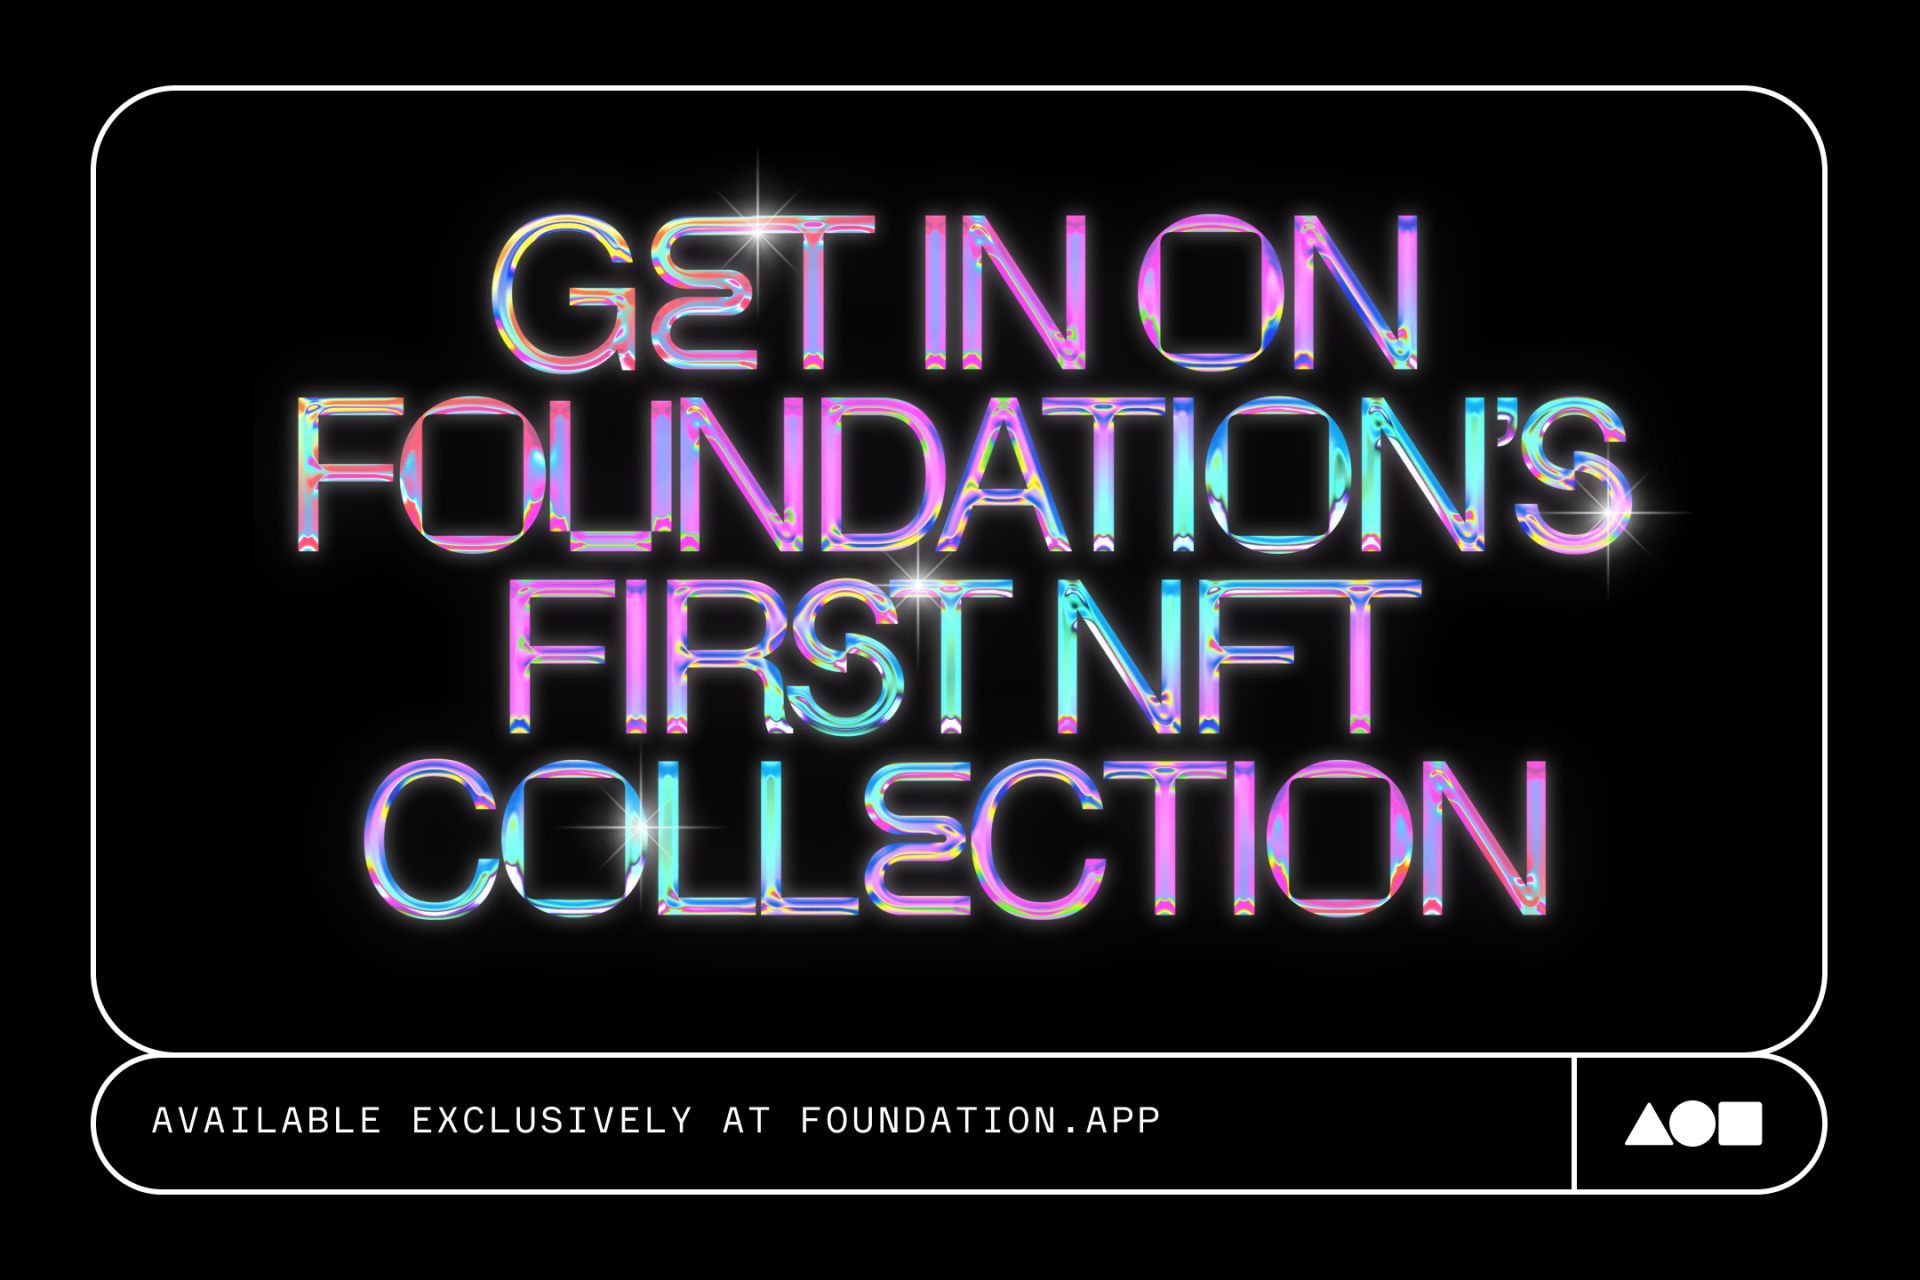 Get in on Foundation's first NFT collection.